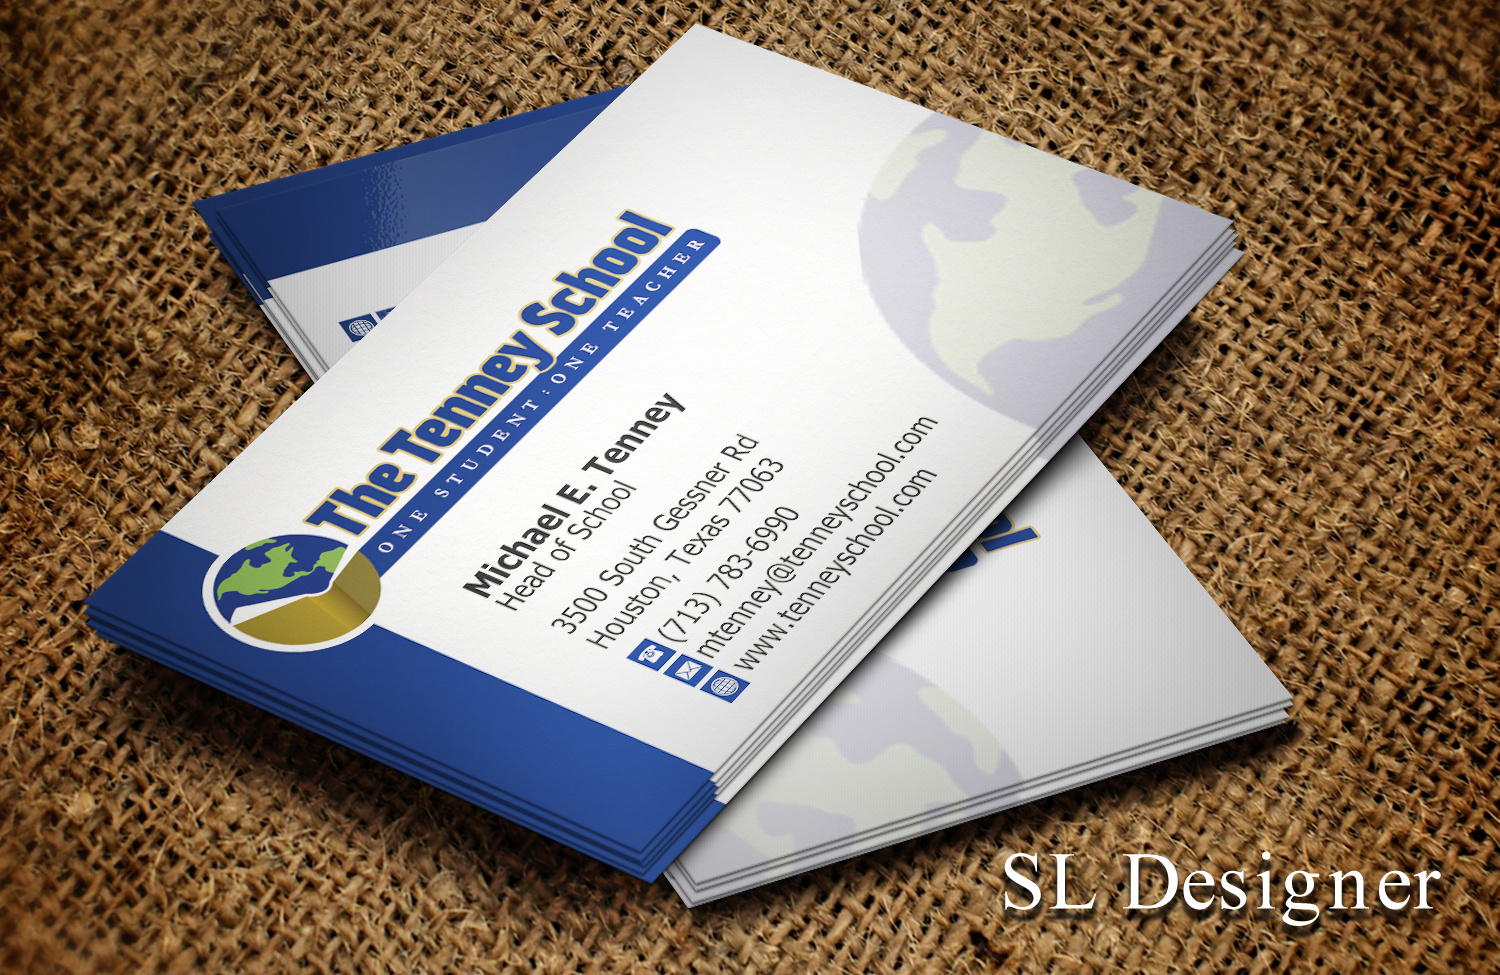 278 Serious Business Card Designs | Education Business Card Design ...